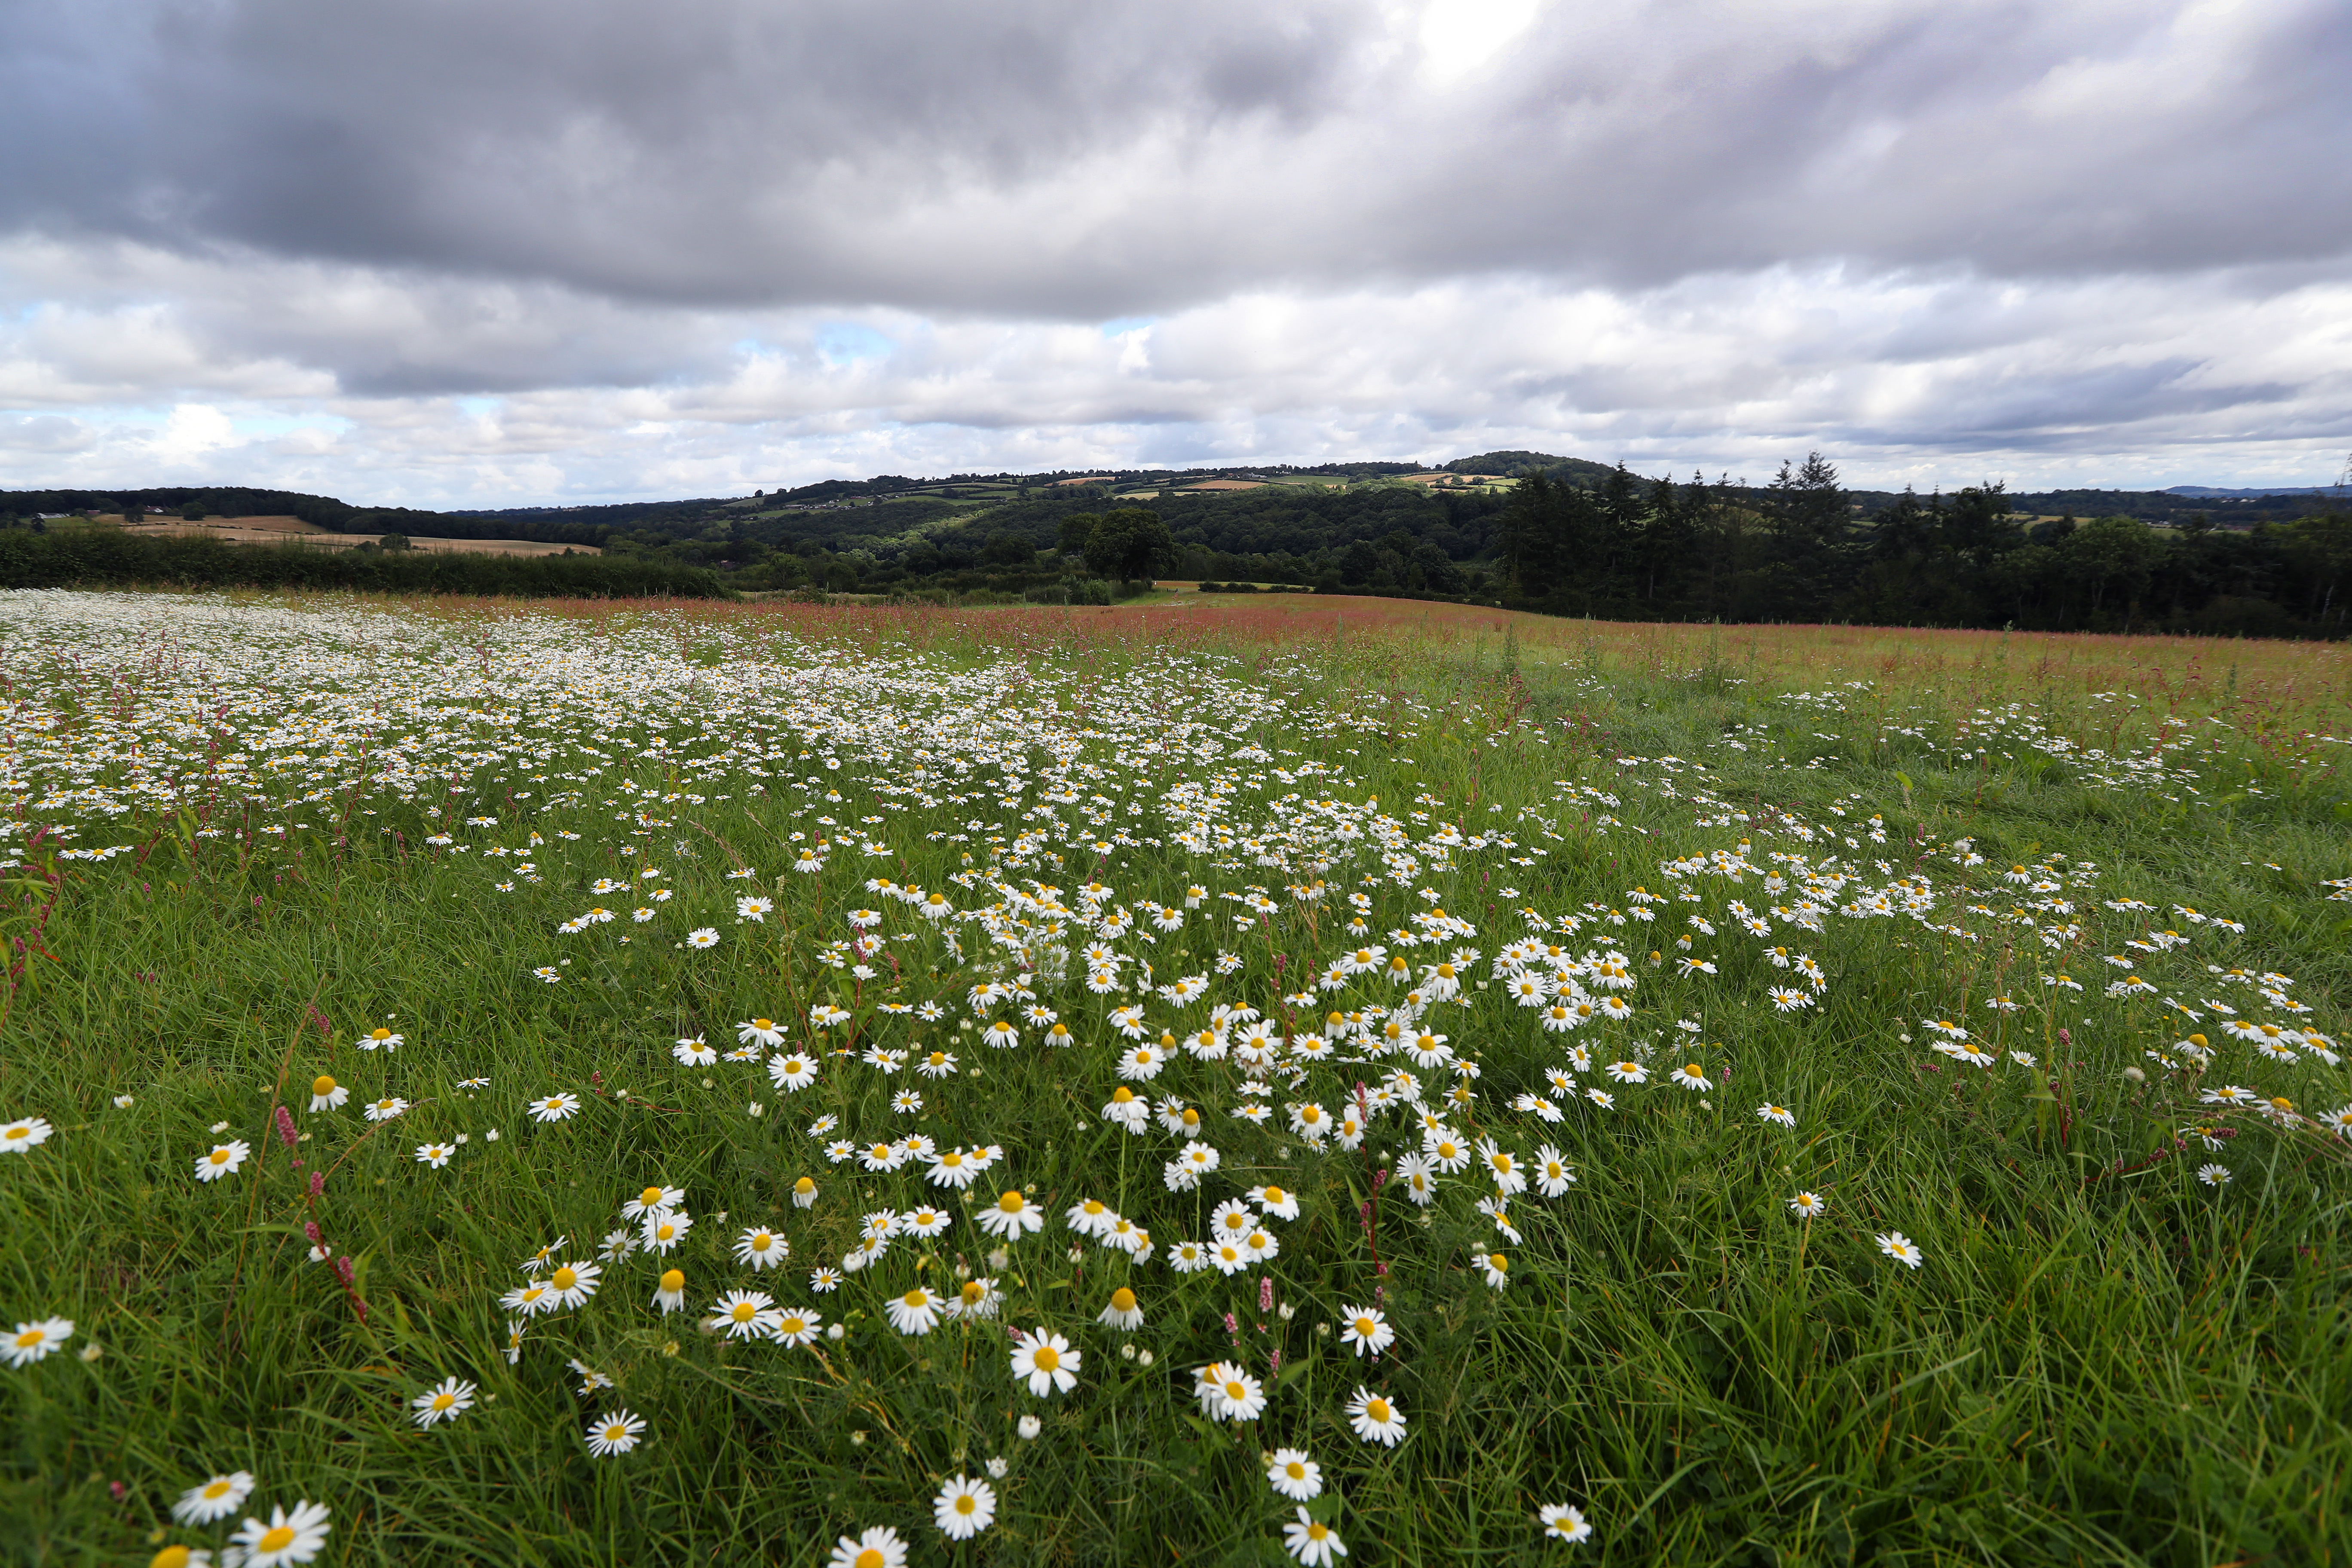 Image of wildflowers on the site